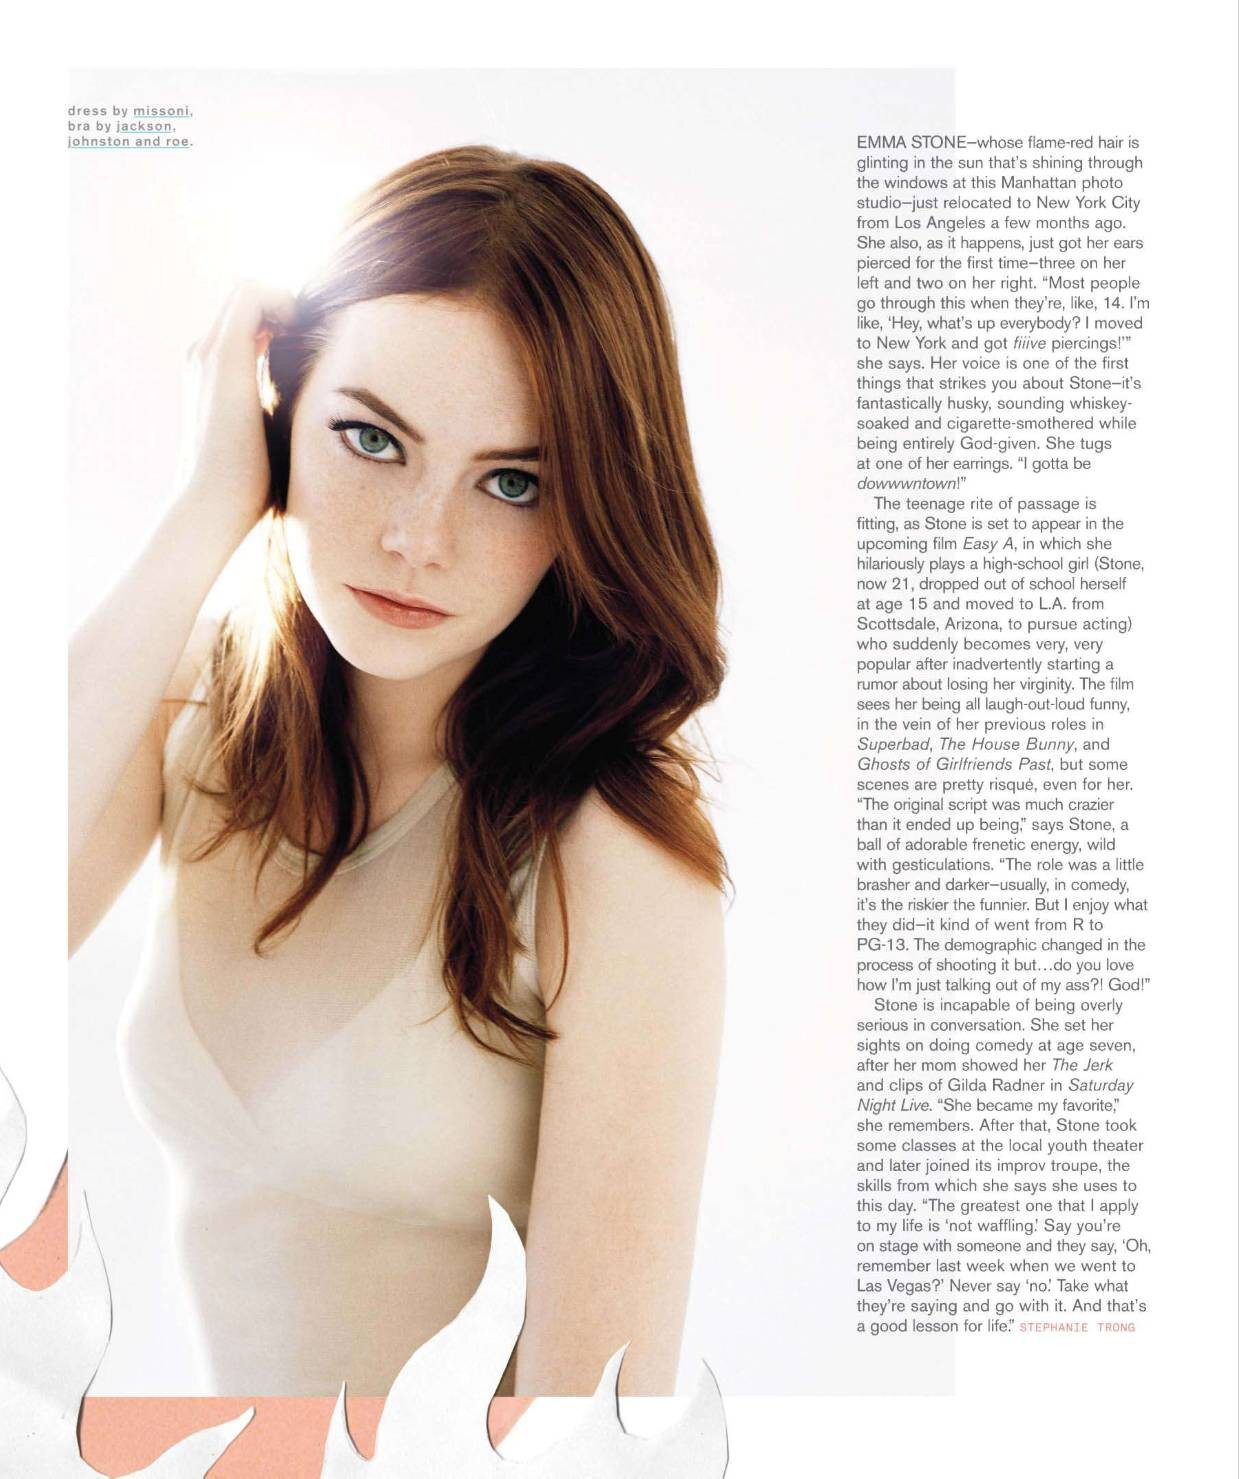 Emma Stone photo (emma_stone009, 1239 x 1479 pixels, 243 kB)